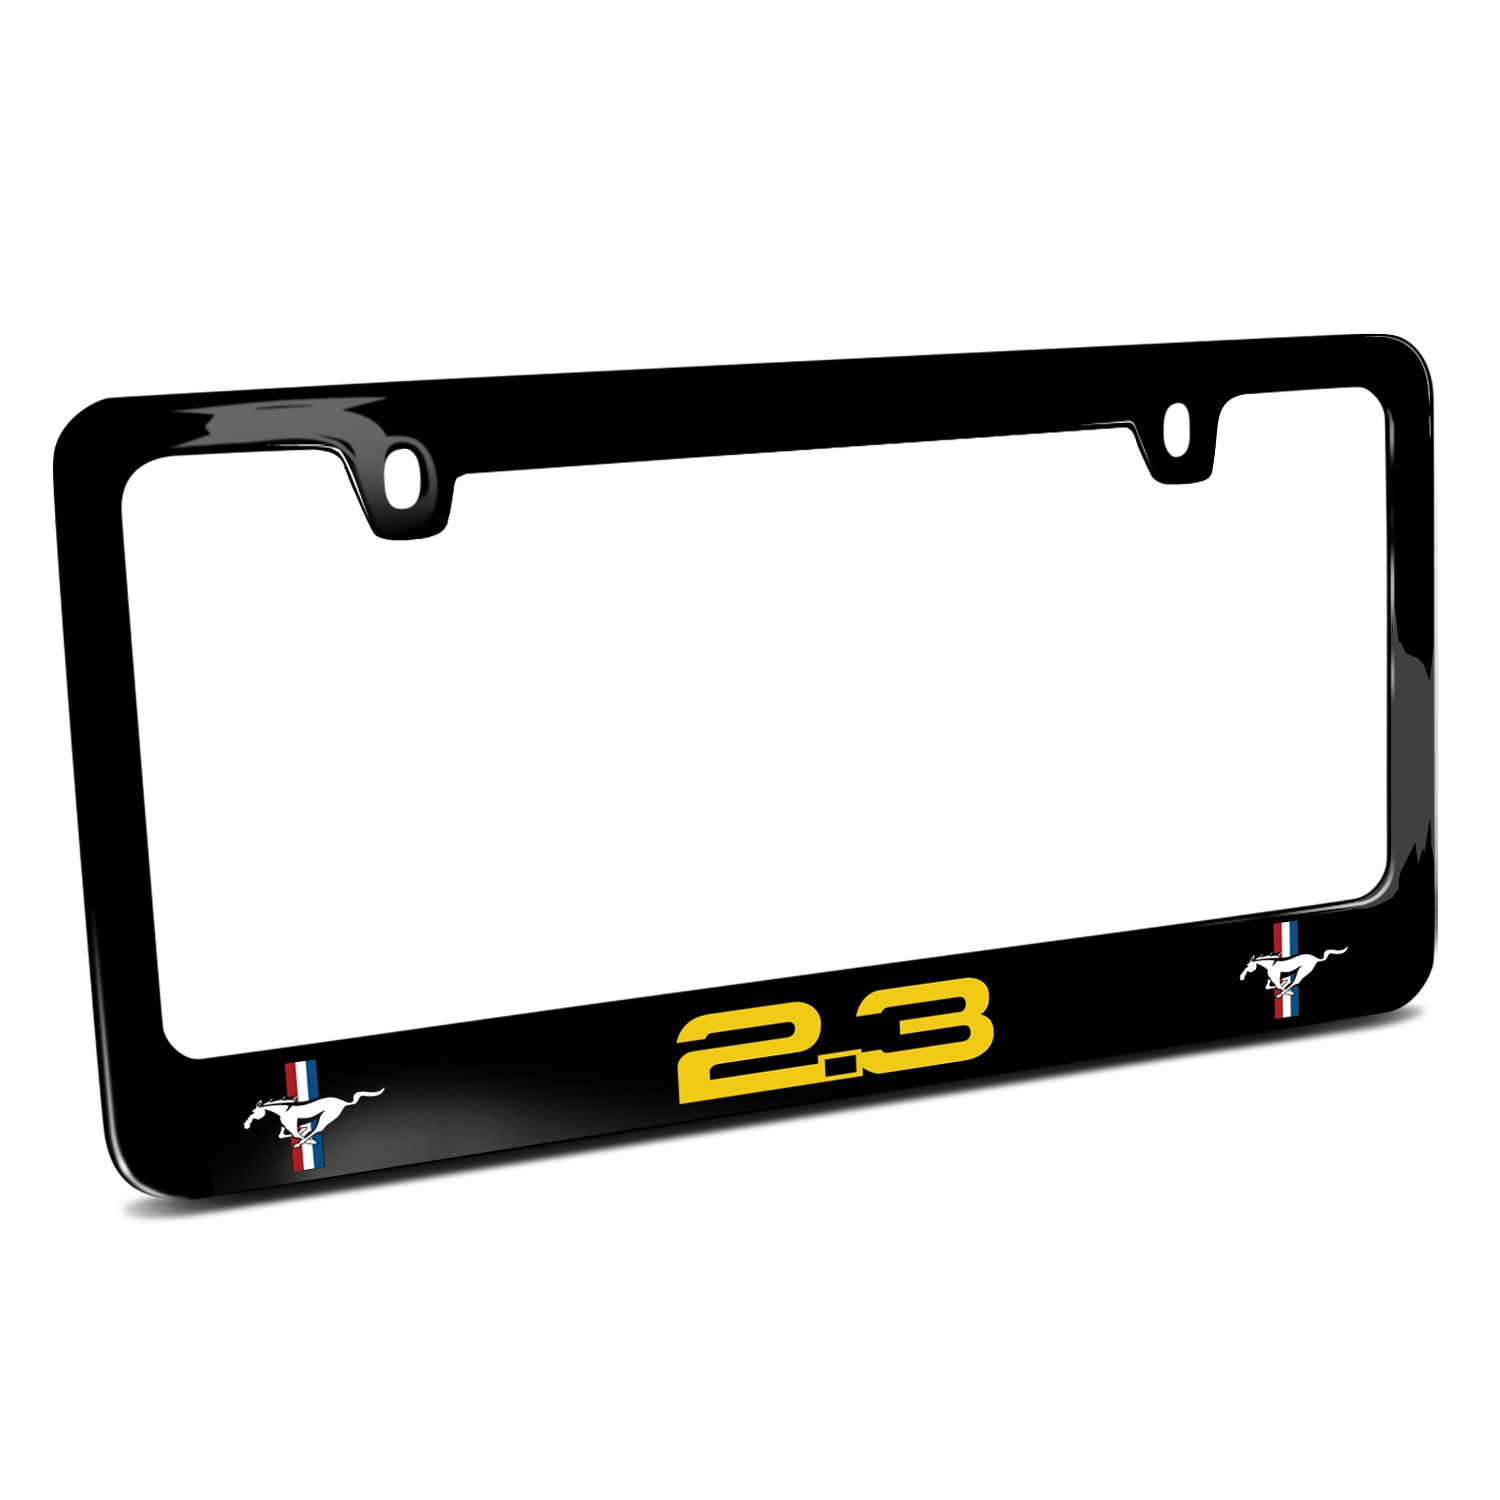 Ford Mustang 2.3L EcoBoost in Yellow Dual Logo Black Metal License Plate Frame  sc 1 st  iPick Image & Ford Mustang 2.3L EcoBoost in Yellow Dual Logo Black Metal License ...